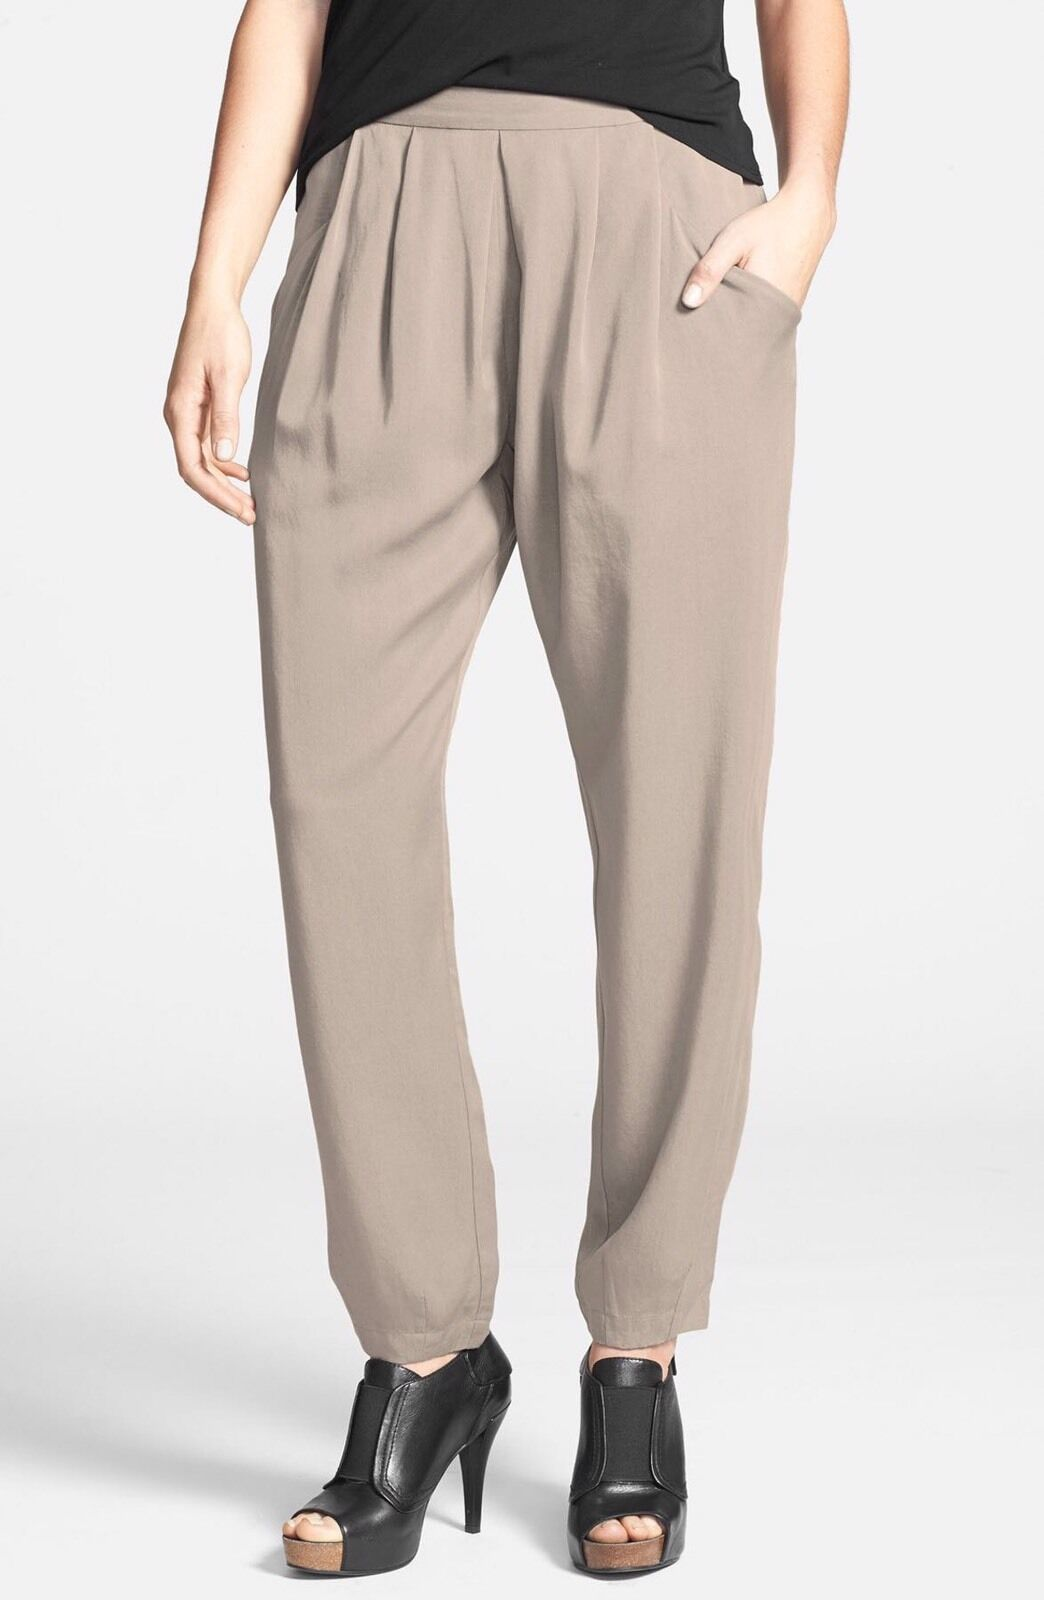 Eileen Fisher Tencel Twill Pants   198. Sold Out